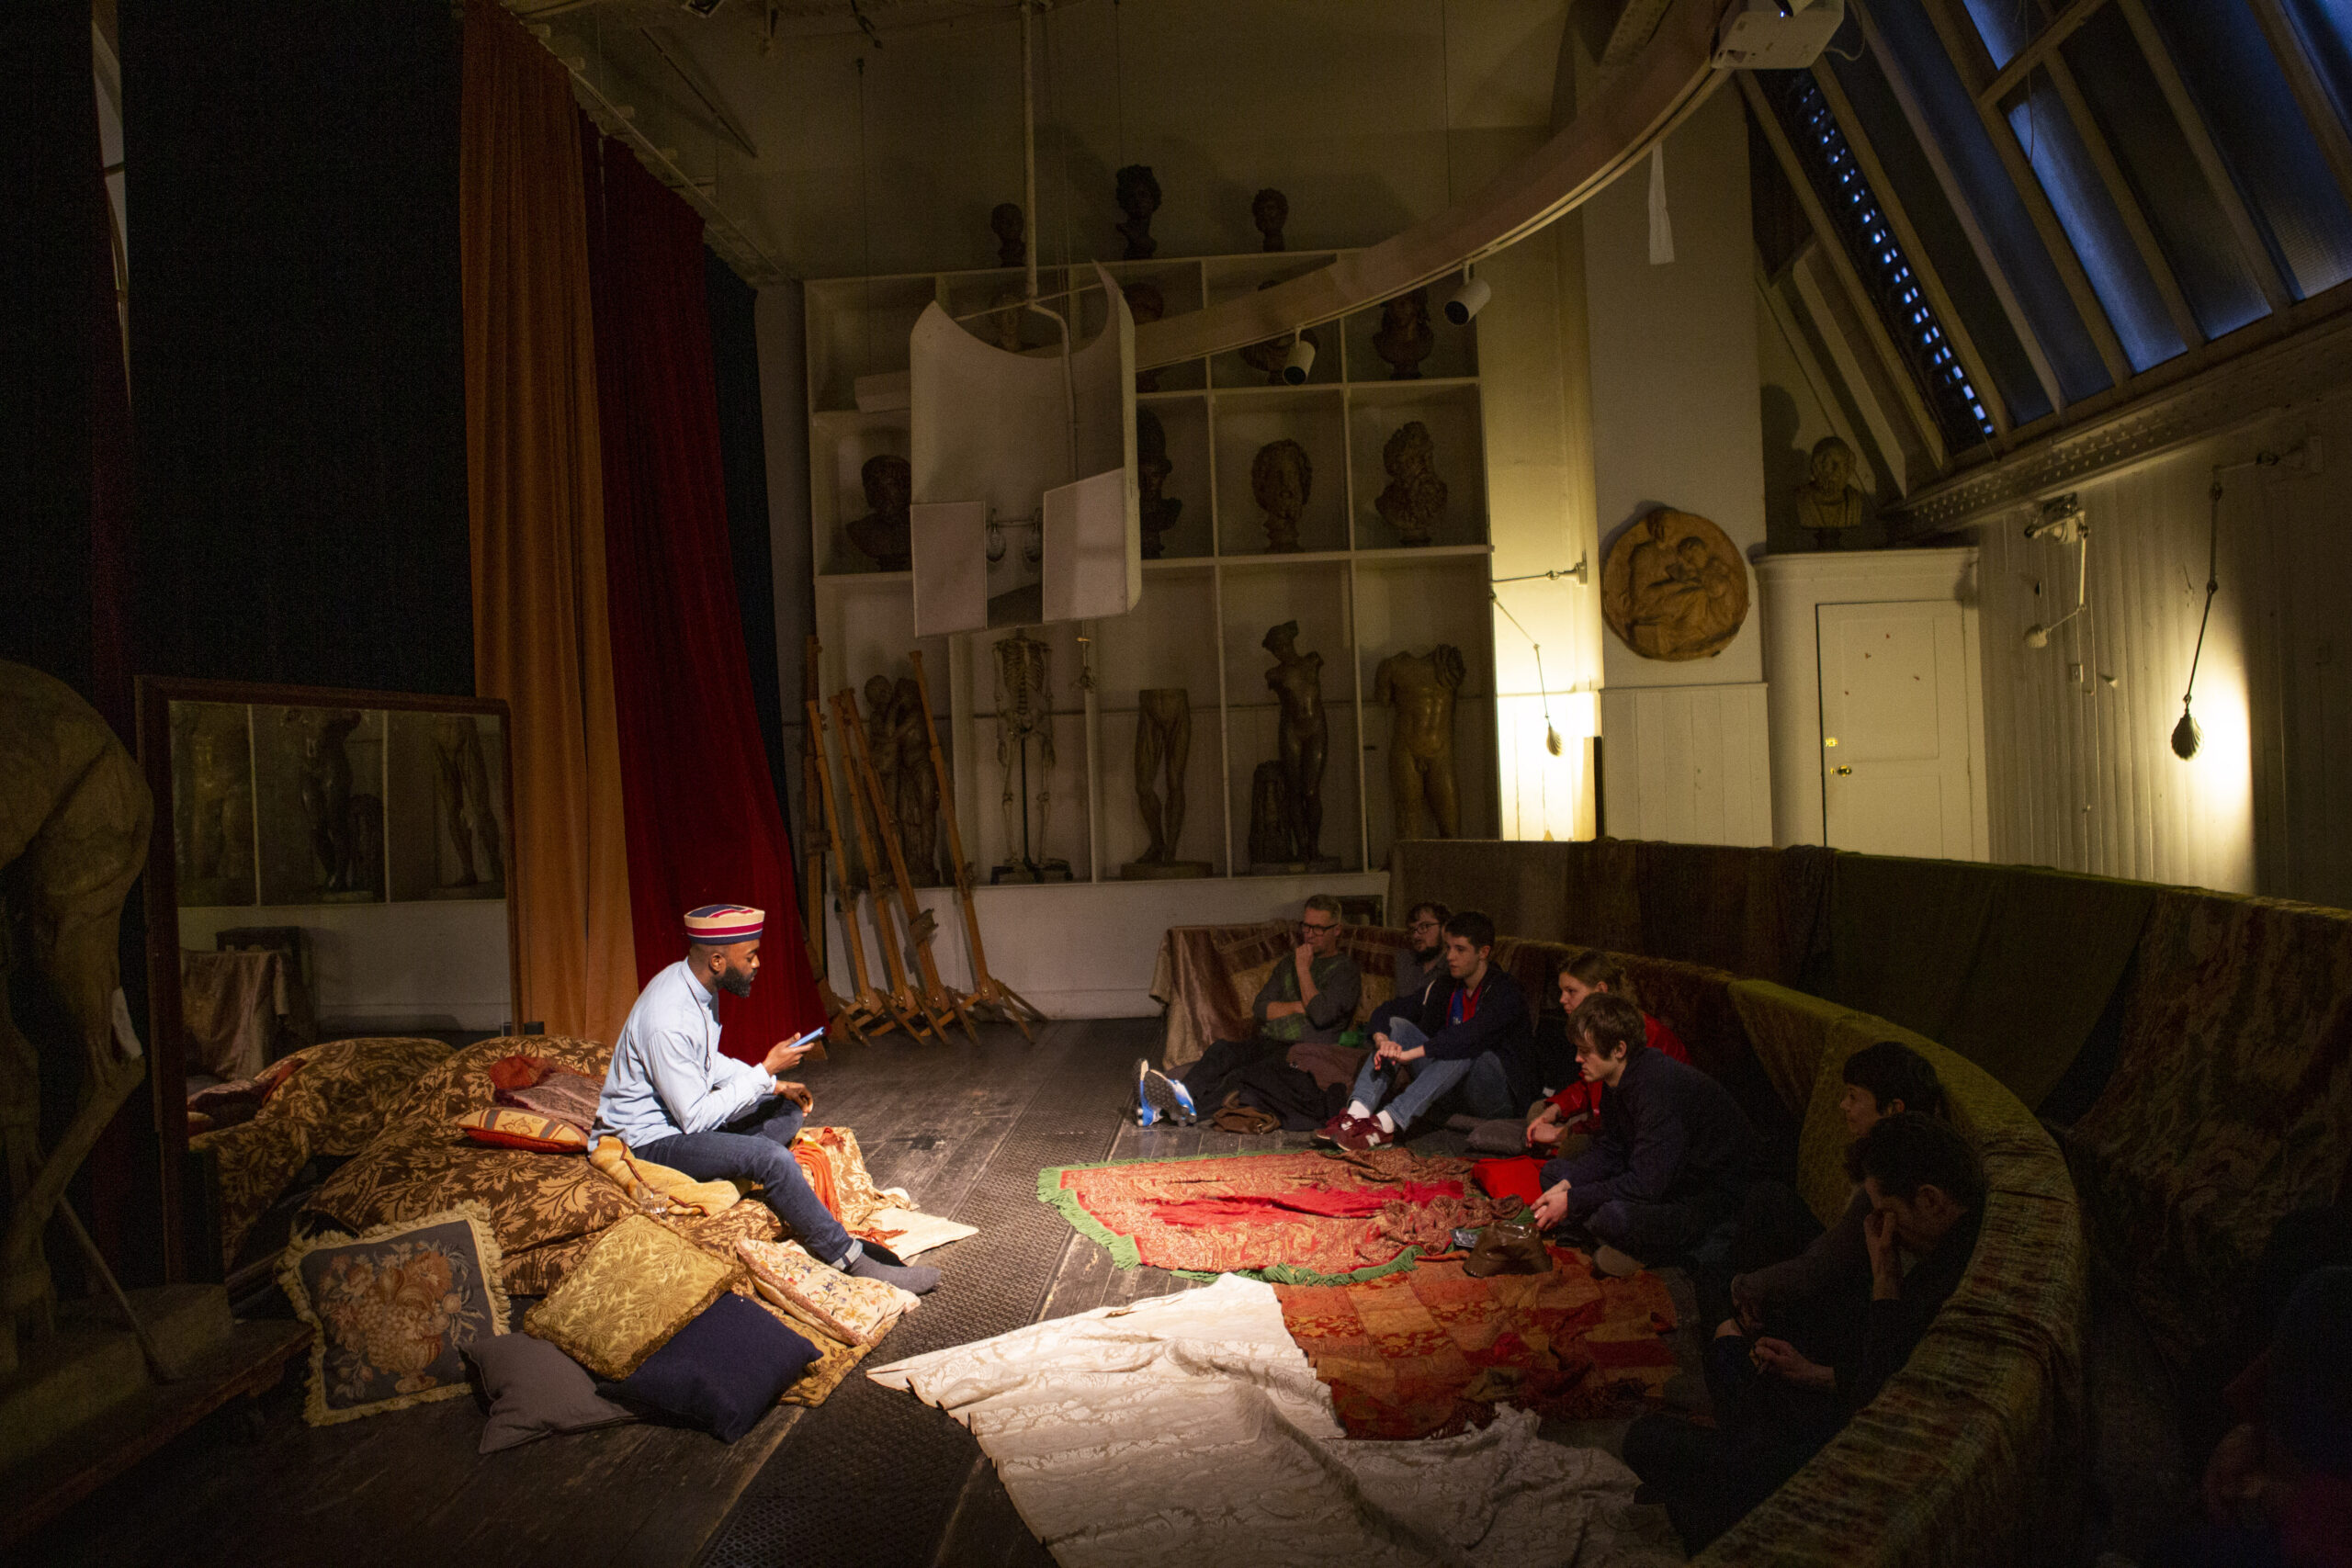 'Alternate Languages: Confronting Boundaries' at the Royal Academy of Arts, March 2019, Inua Ellams performing in the Life Drawing Room Credit: Yiannis Katsaris / Royal Academy of Arts